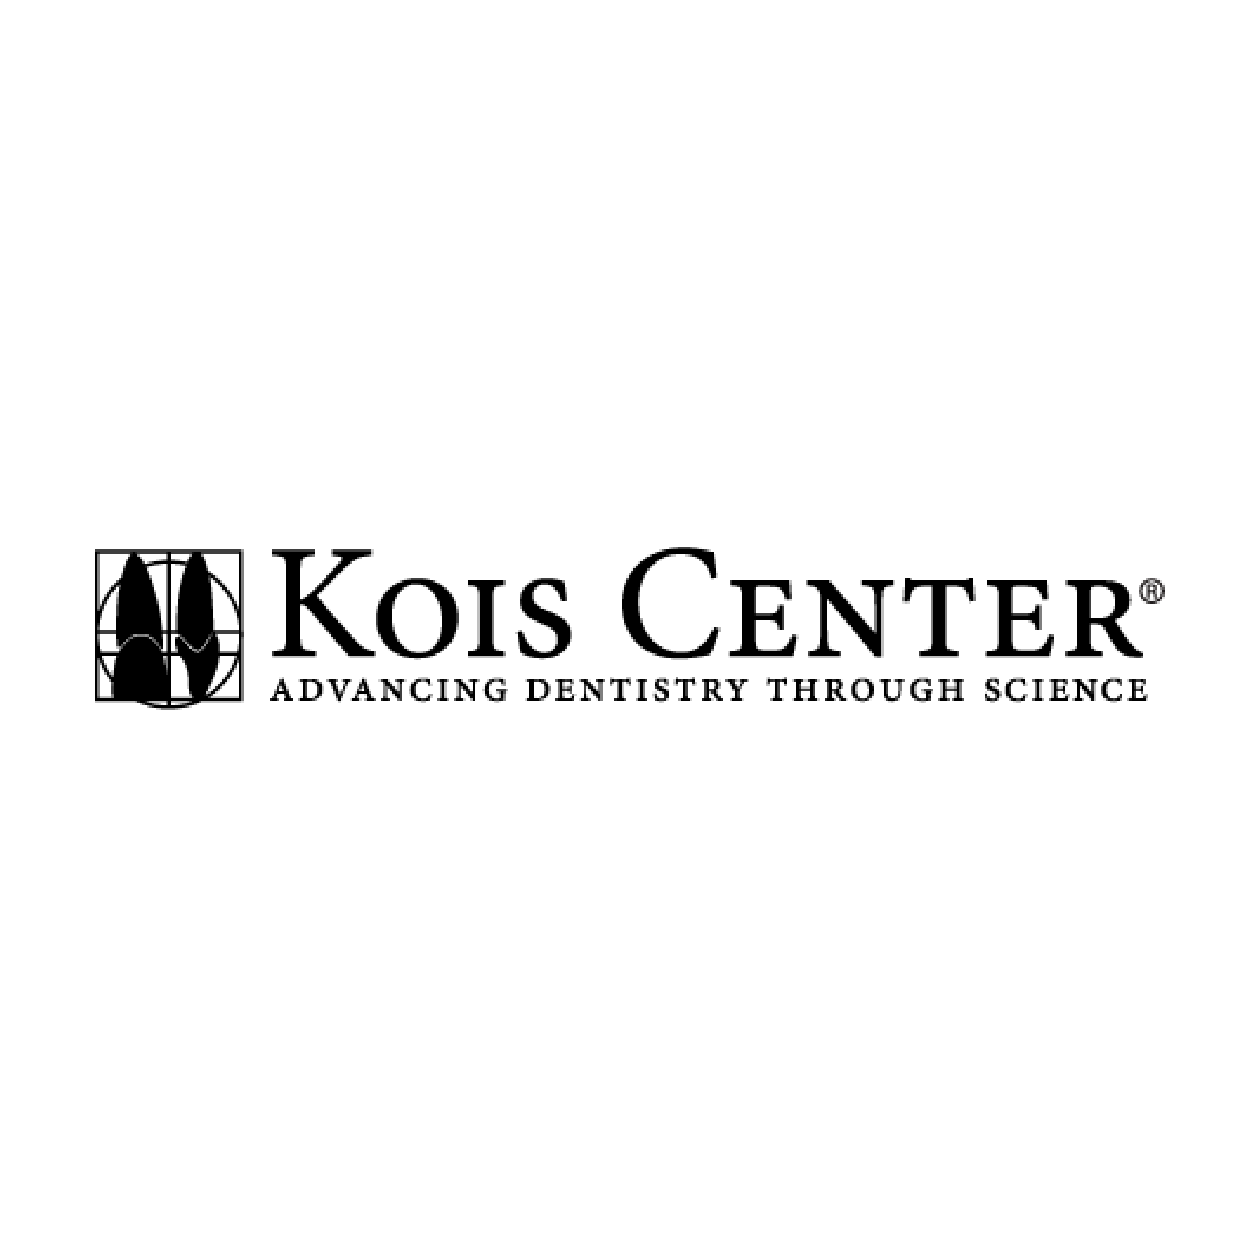 Kois Center - Advancing Dentistry Through Science